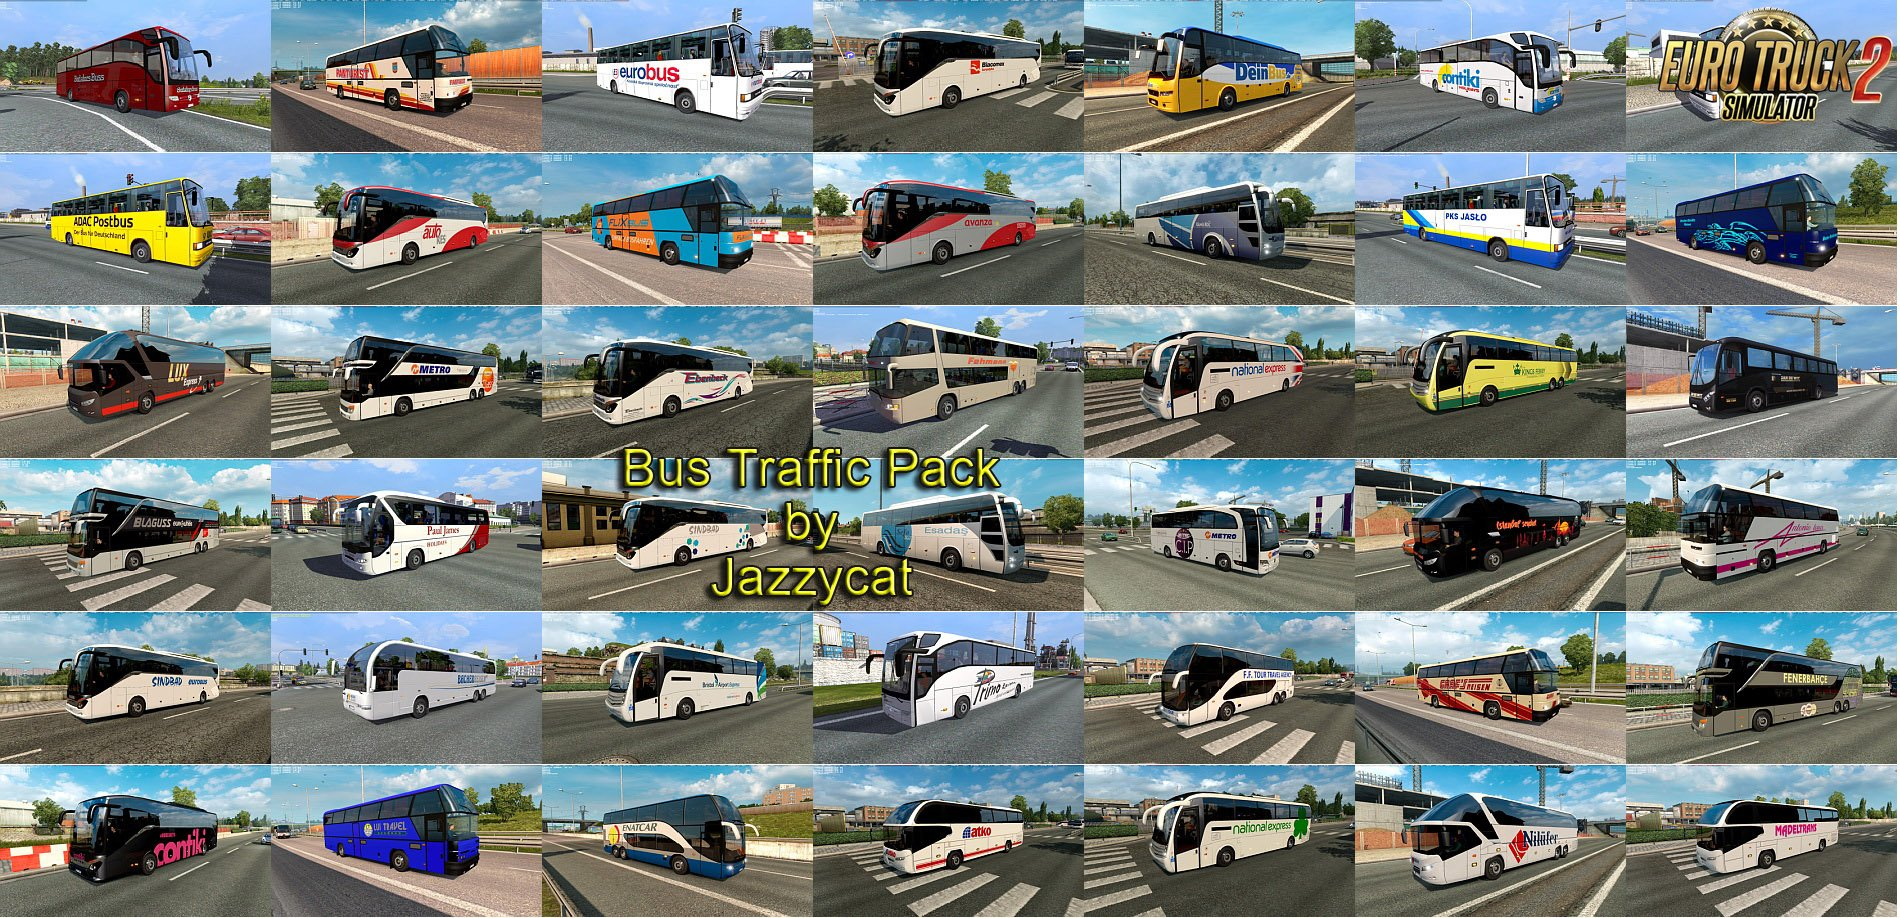 Bus Traffic Pack v3.0.1 by Jazzycat